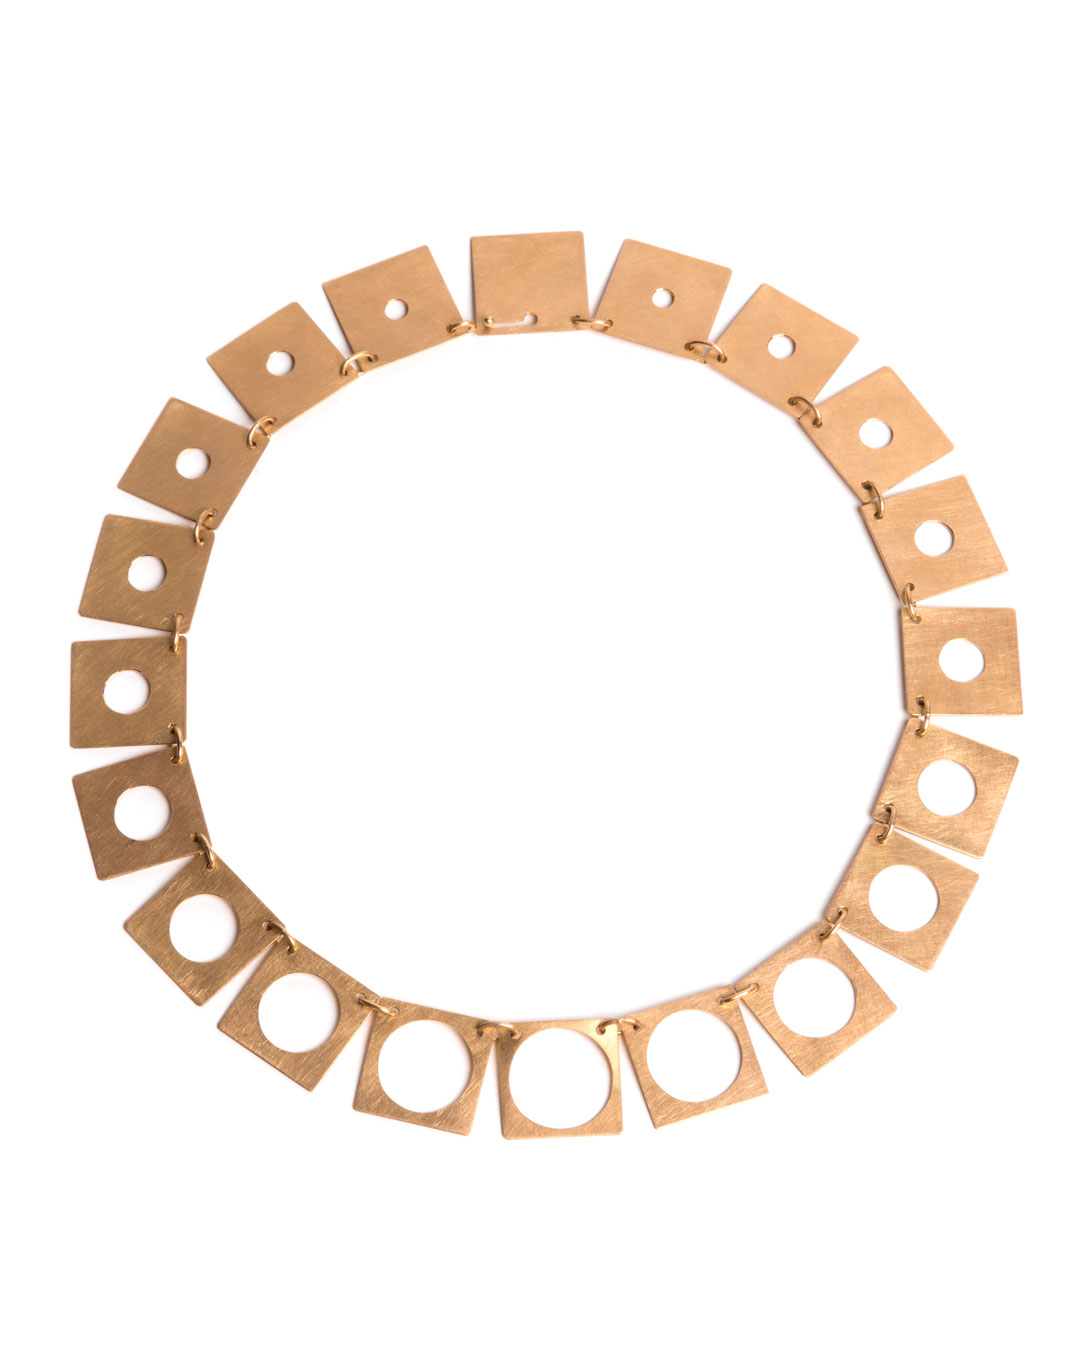 Herman Hermsen, Holes, 2012, necklace; 18ct gold, 170 x 170 x 2 mm, price on request